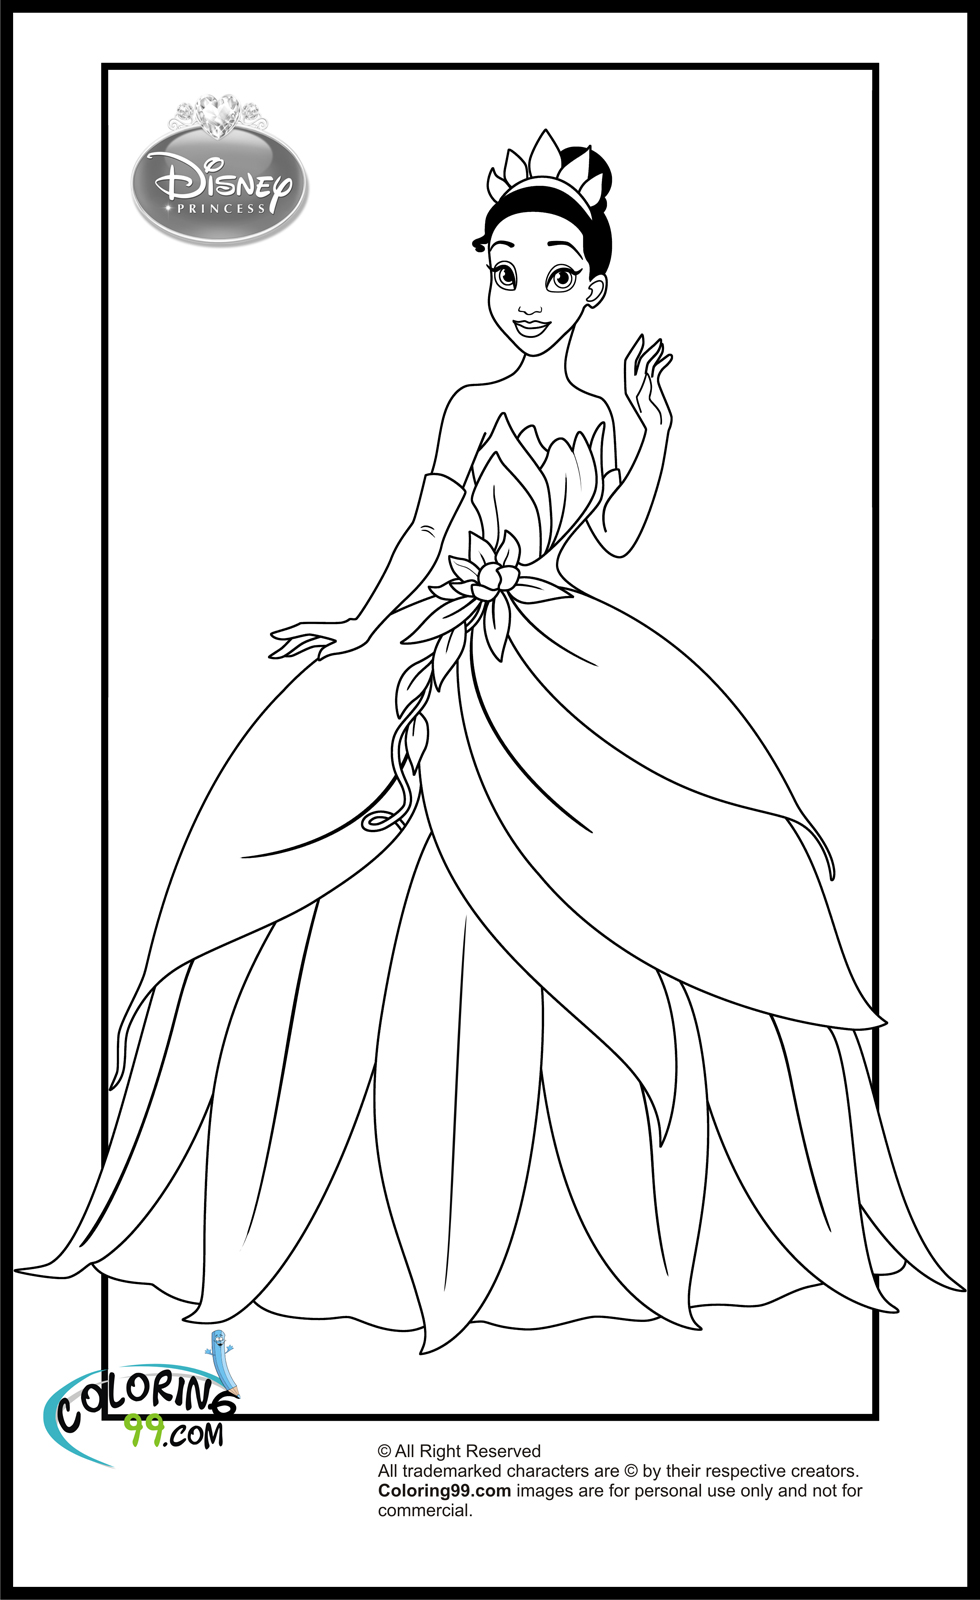 disney+princess+coloring+pages to see it full size